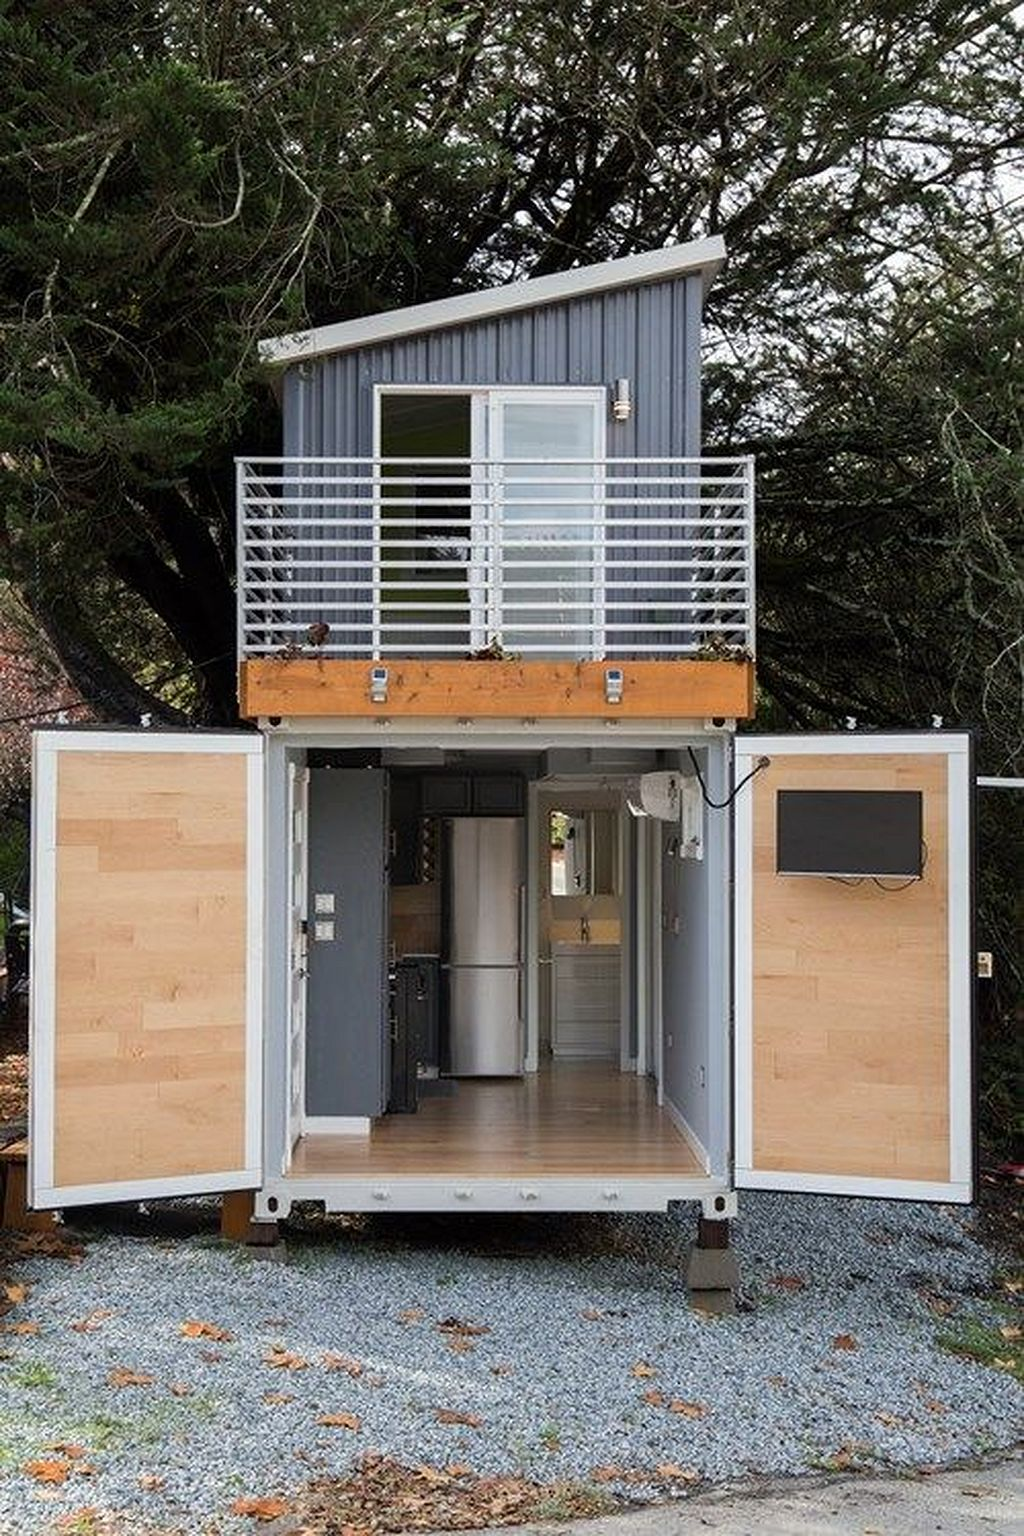 Best Kitchen Gallery: 20 Awesome Tiny Container House Easy To Build Cargo Container of Easy Build Shipping Container Homes on rachelxblog.com